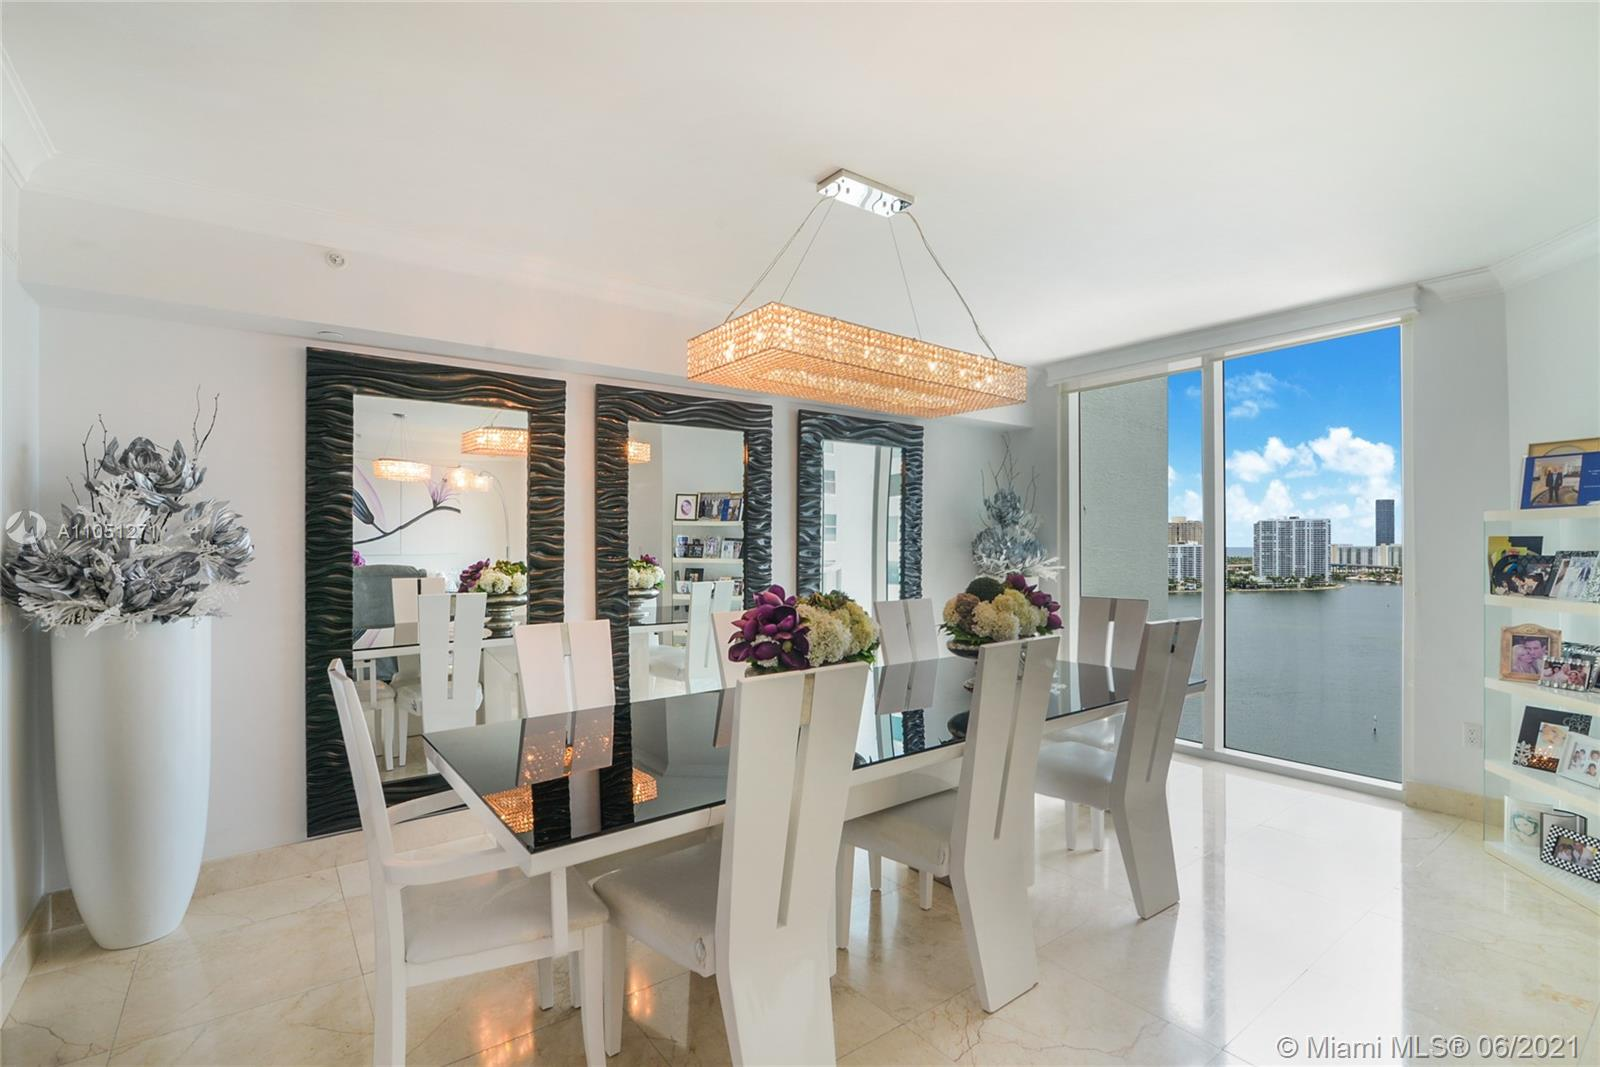 Photo of 3301 183rd St #1906, Aventura, Florida, 33160 - Large Open Floor plan (Living-room and dining-room looking all the Intercostal and the Ocean with the city Sunny Isles Beach)